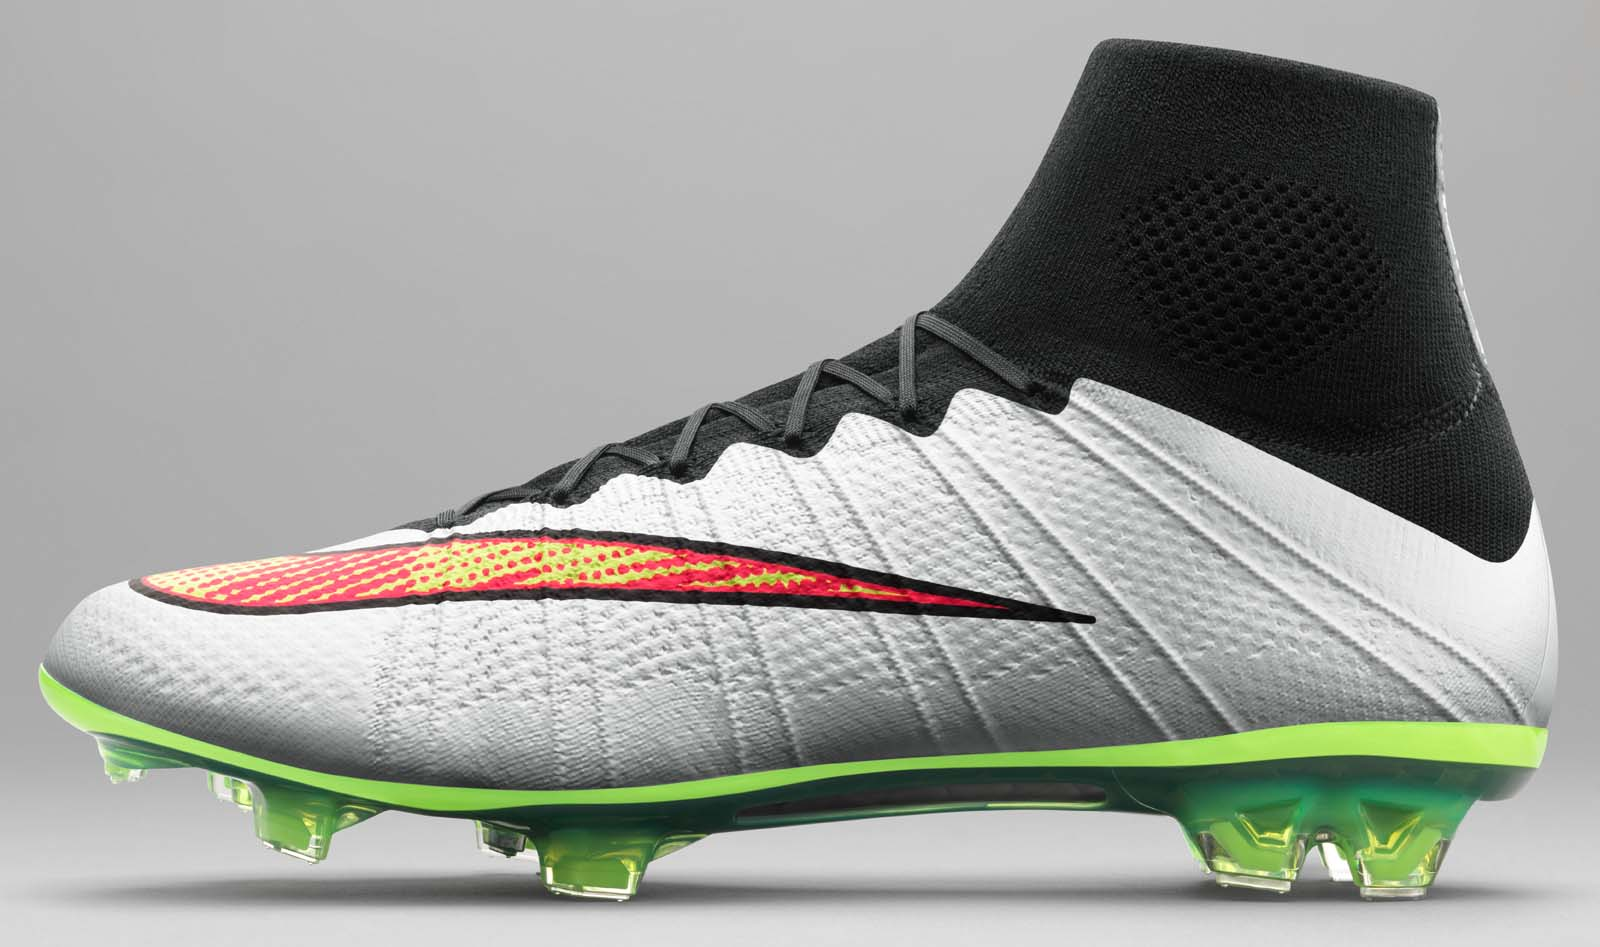 Nike White 2015 Football Boots Pack: Shine Through ... - photo#7